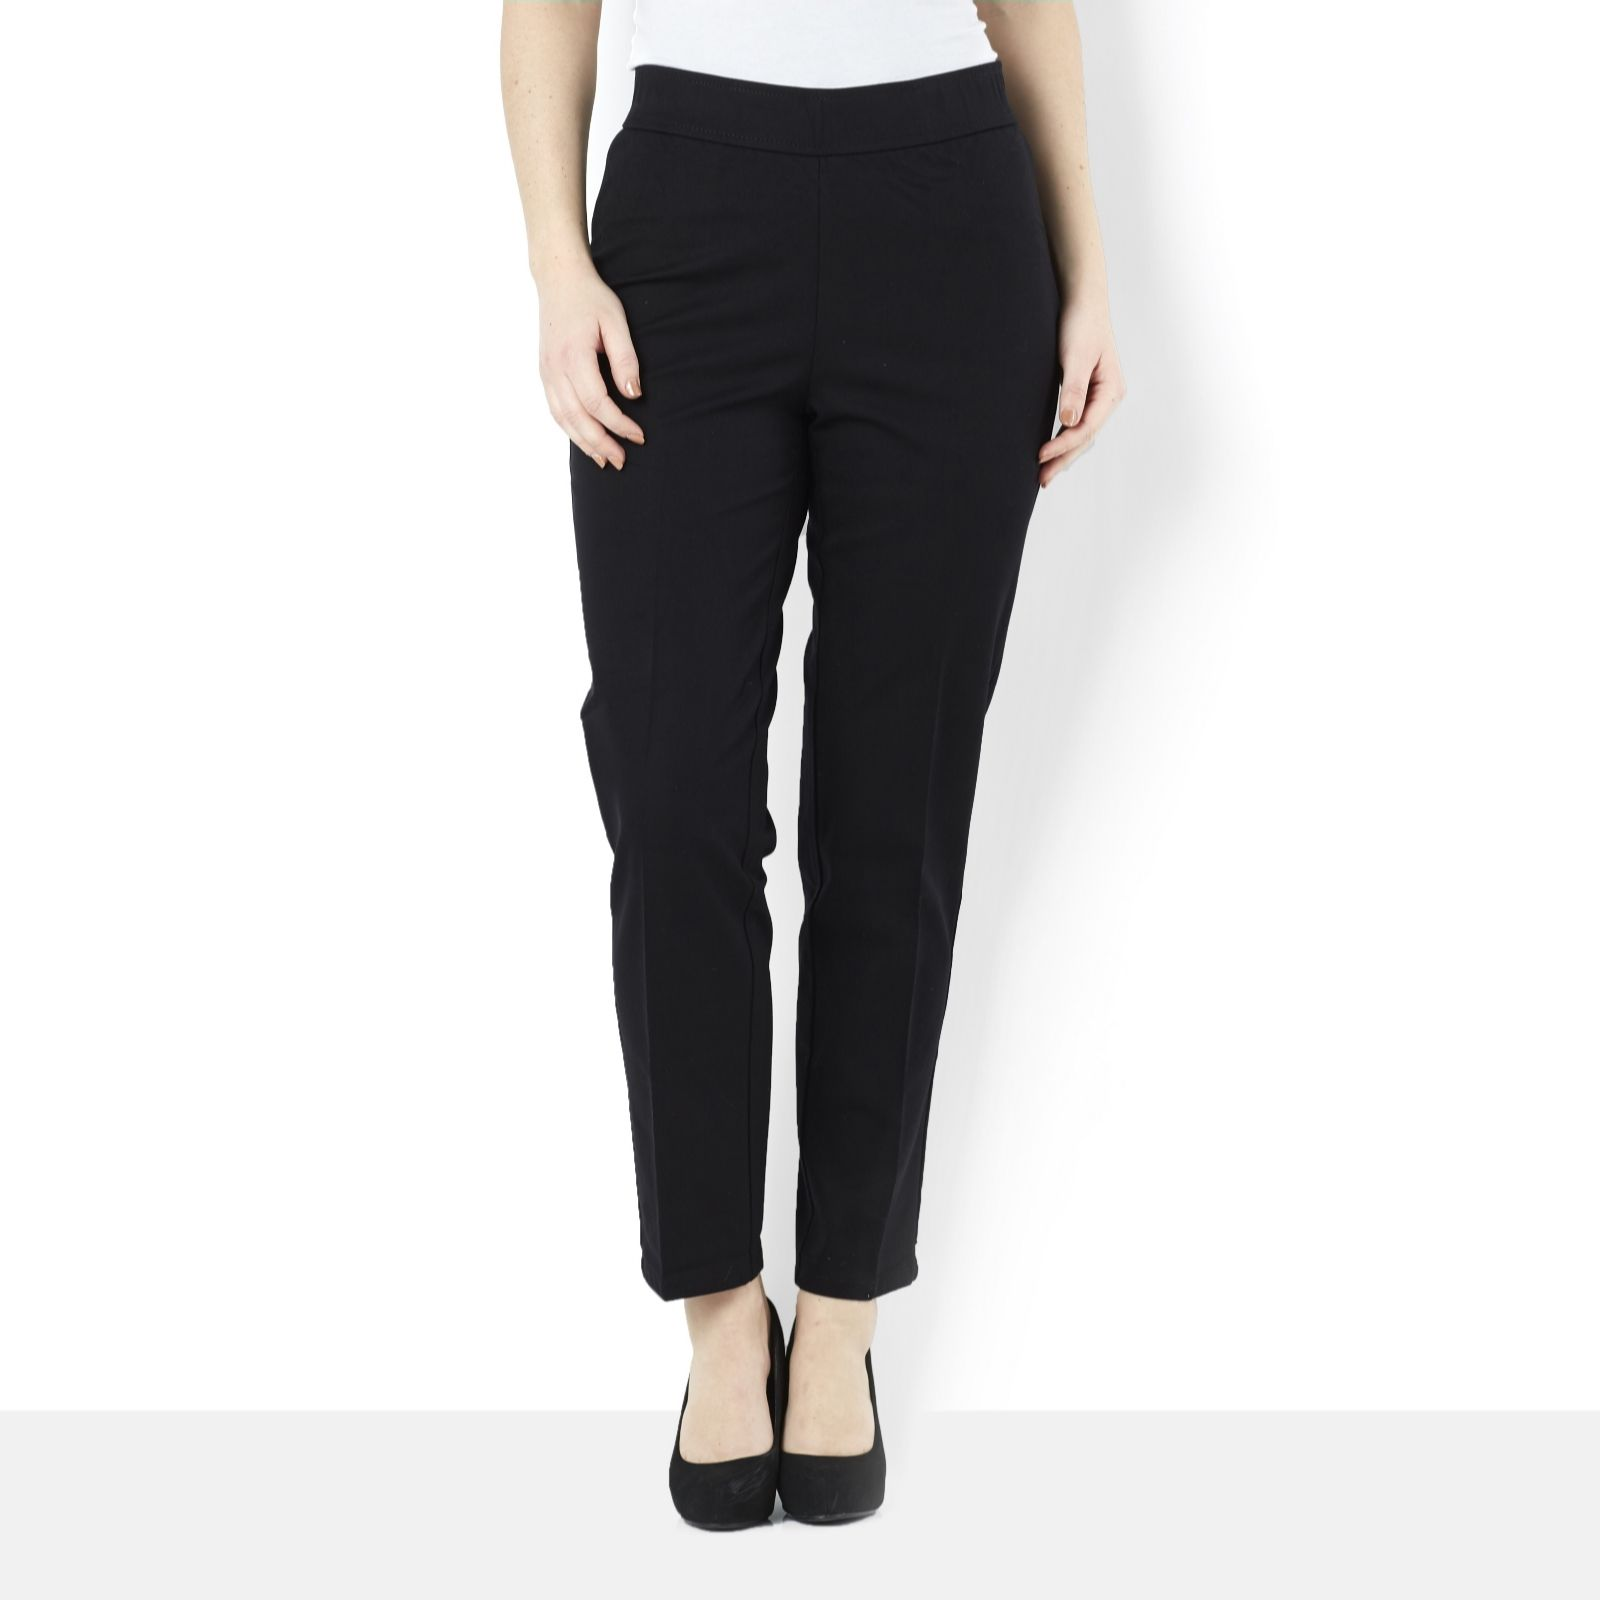 Isaac Mizrahi Live Stretch Ankle Length Trousers with Seam Detail